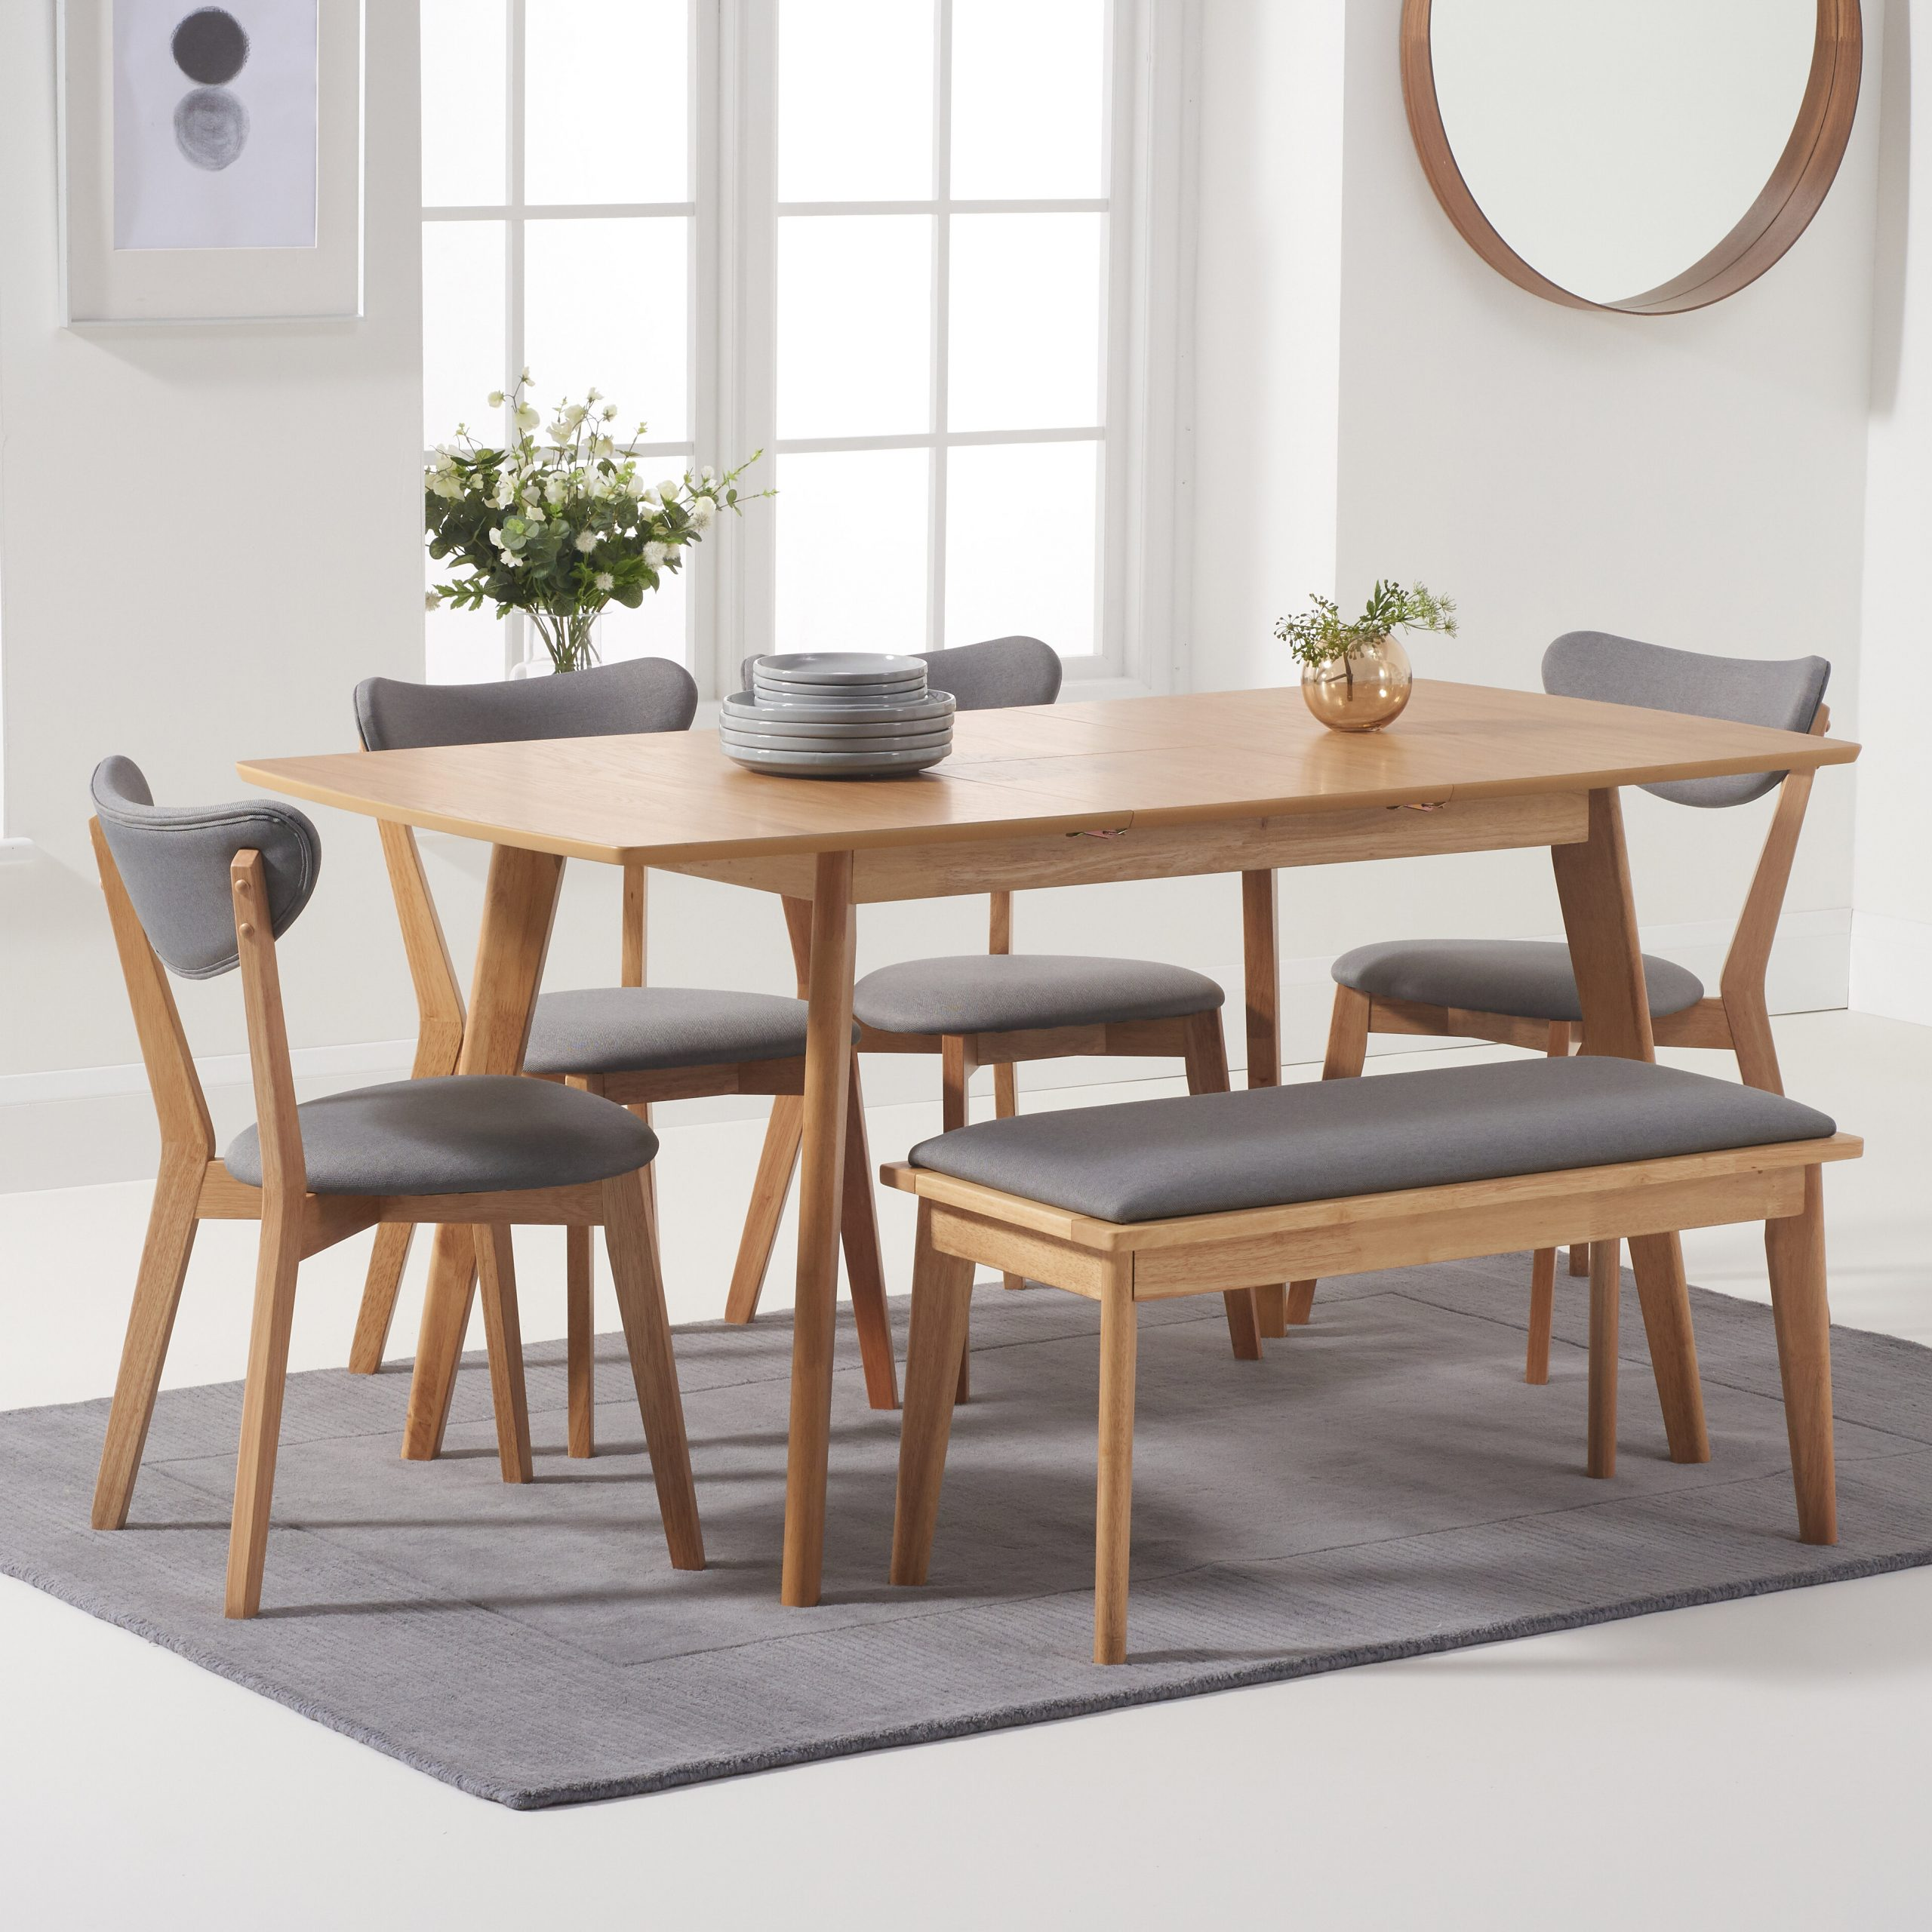 Ideas About Extending Dining Bench, – Howellmagic Dining Within Most Recent Alfresco Brown Benchwright Extending Dining Tables (View 21 of 25)